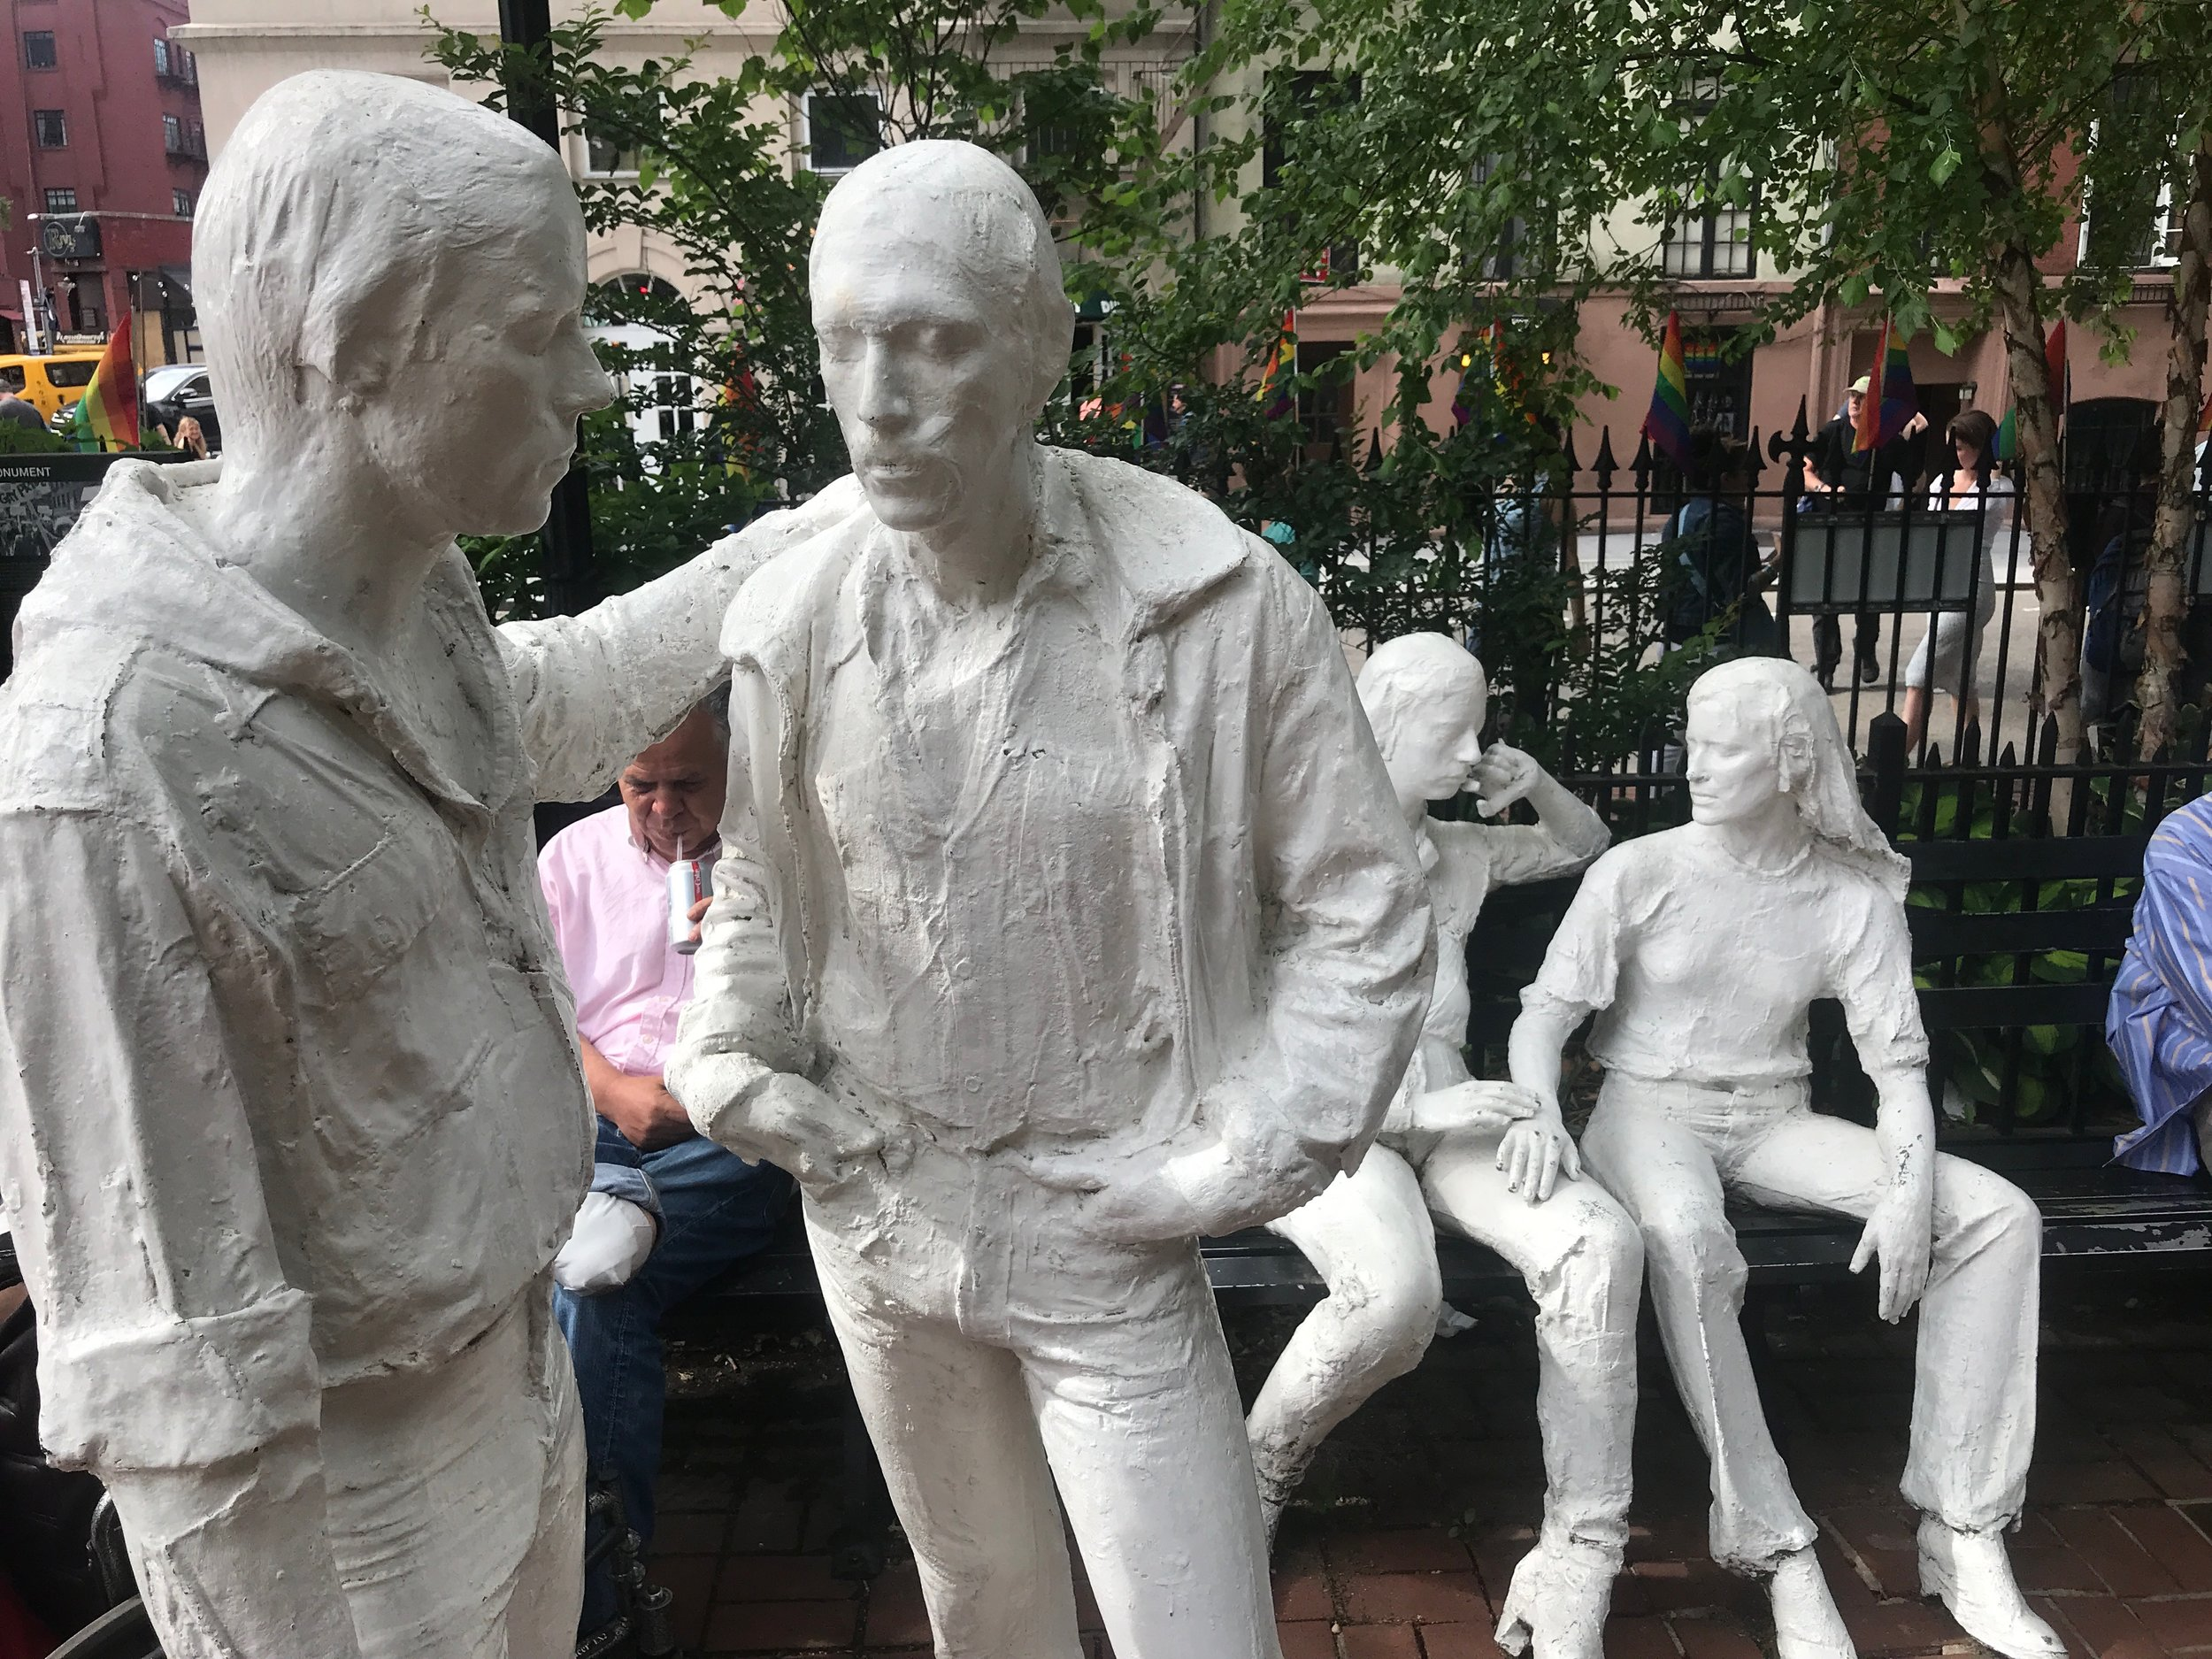 Rainbow flags, sculptures and visitors at the former Sheridan Square in New York's Greenwich Village, which is now part of the Stonewall National Monument.